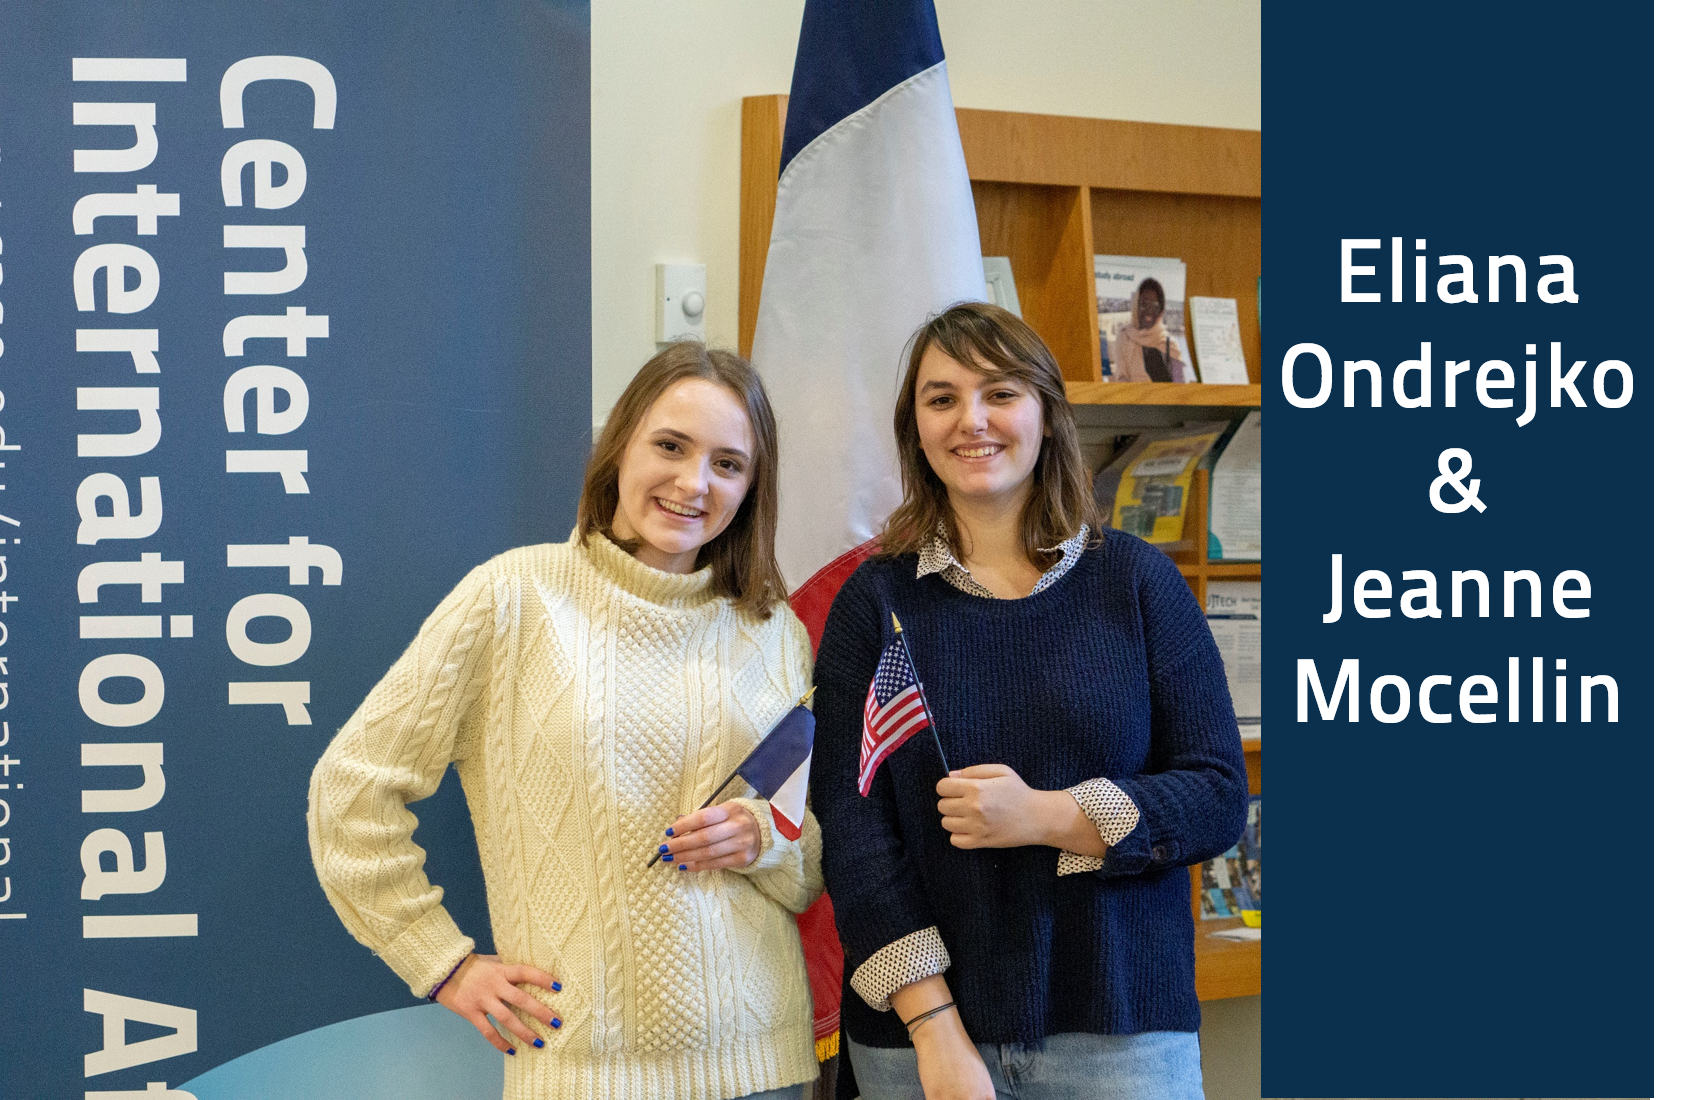 A picture of Eliana Ondrejko and Jeanne  Mocellin standing in front of a French flag, each holding a flag from their home country. Jeanne is holding the French flag and Eliana is holding the American flag.